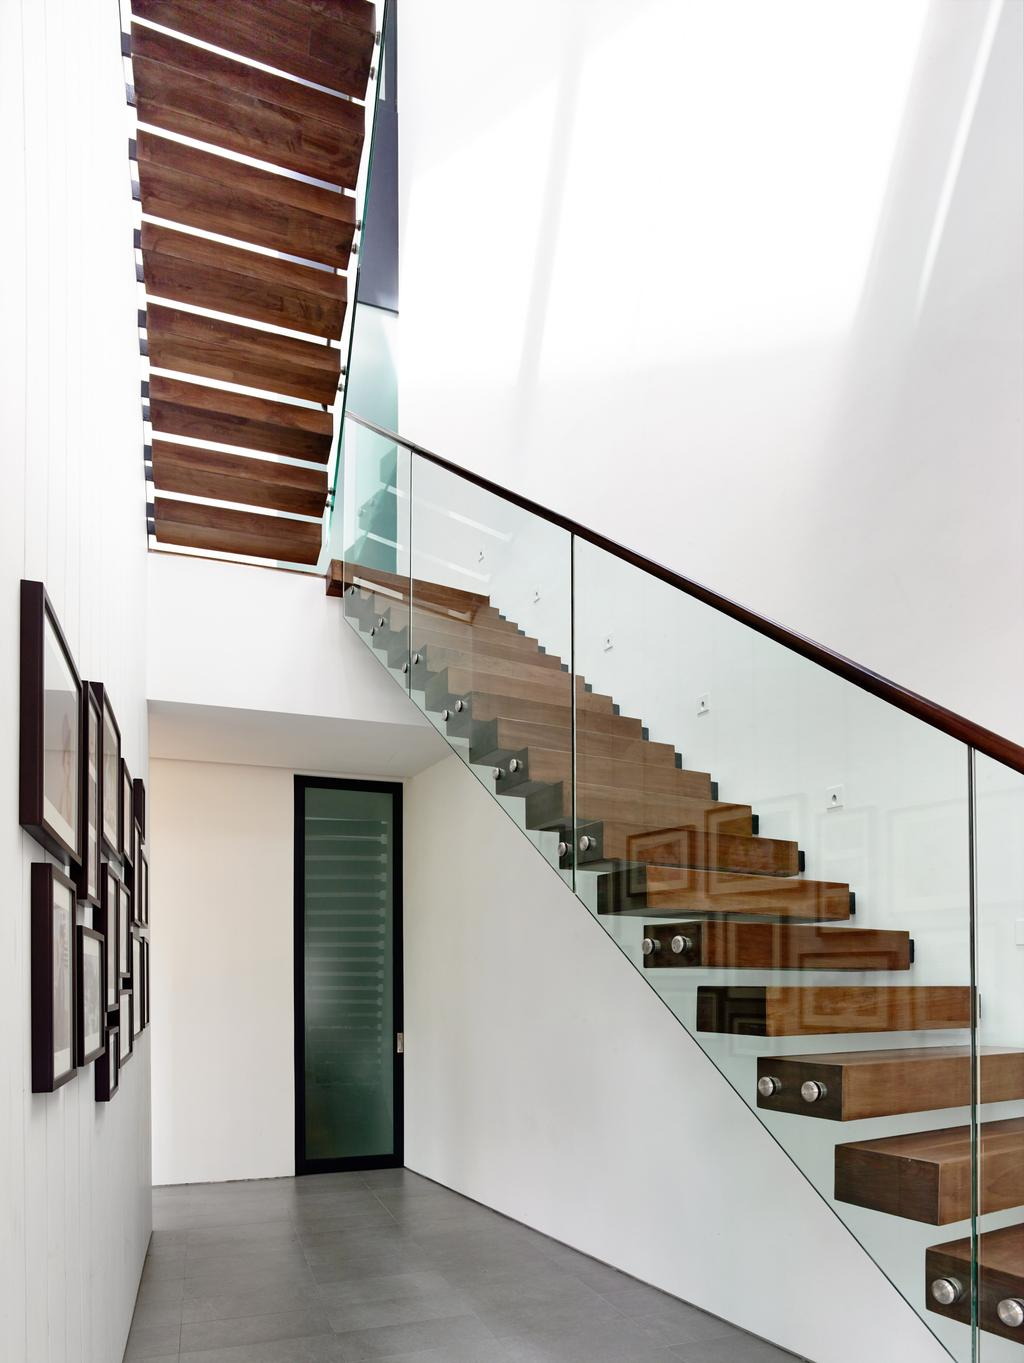 Contemporary, Landed, Faber Terrace, Architect, HYLA Architects, Banister, Handrail, Staircase, Lumber, Wood